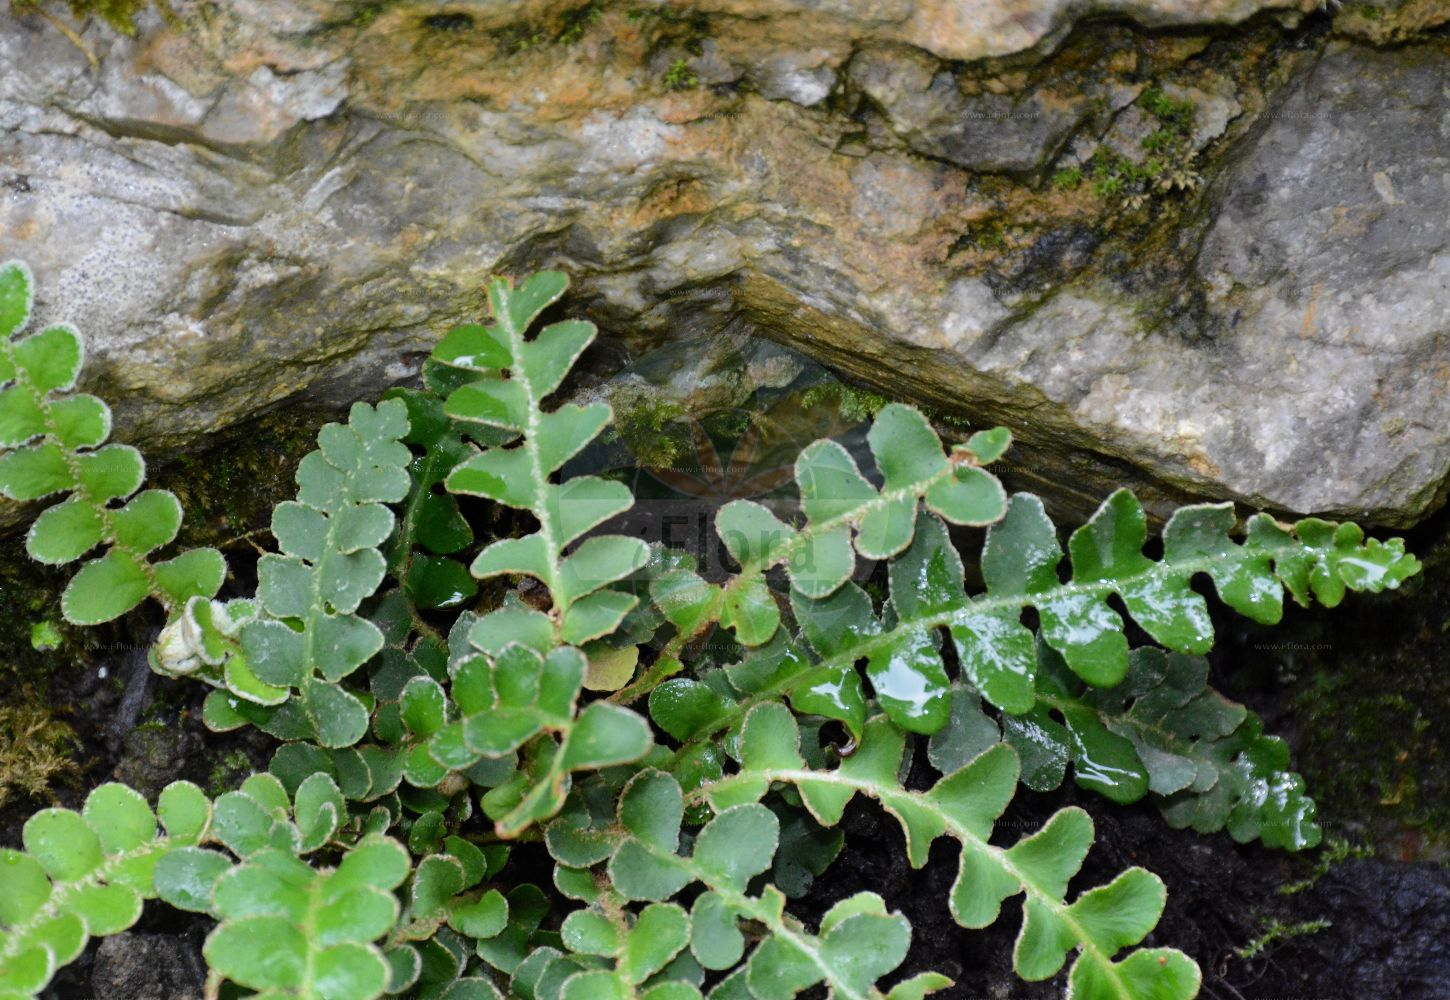 Foto von Asplenium ceterach (Schriftfarn - Rustyback). Das Foto wurde in Muenster, Nordrhein-Westfalen, Deutschland aufgenommen. ---- Photo of Asplenium ceterach (Schriftfarn - Rustyback).The picture was taken in Muenster, North Rhine-Westphalia, Germany. (Asplenium ceterach,Schriftfarn,Rustyback,Ceterach officinarum,Ceterach vulgare,Grammitis ceterach,Rusty-back Fern,Scale Fern,Scaly Spleenwort,Asplenium,Streifenfarn,Spleenwort,Aspleniaceae,Streifenfarngewaechse,Spleenworts)